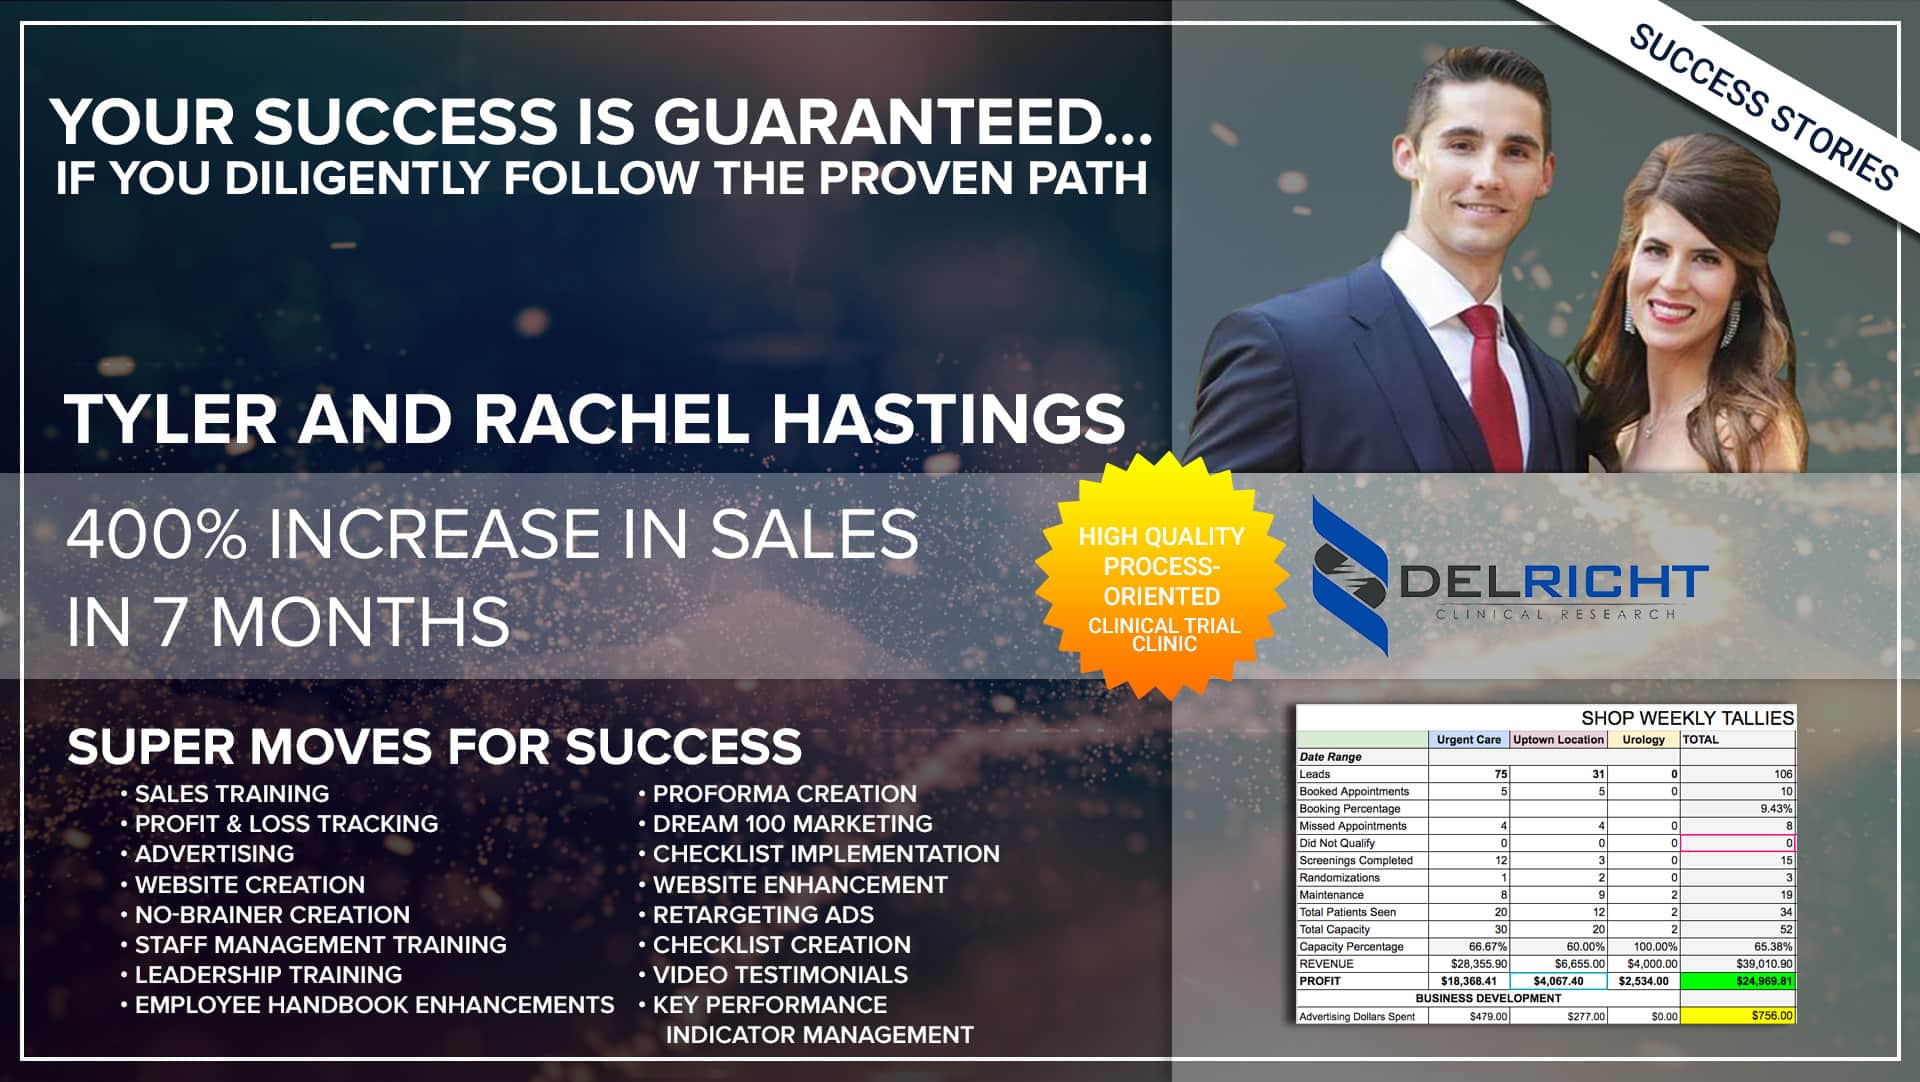 Business Coach | Success Delricht - Thrive15